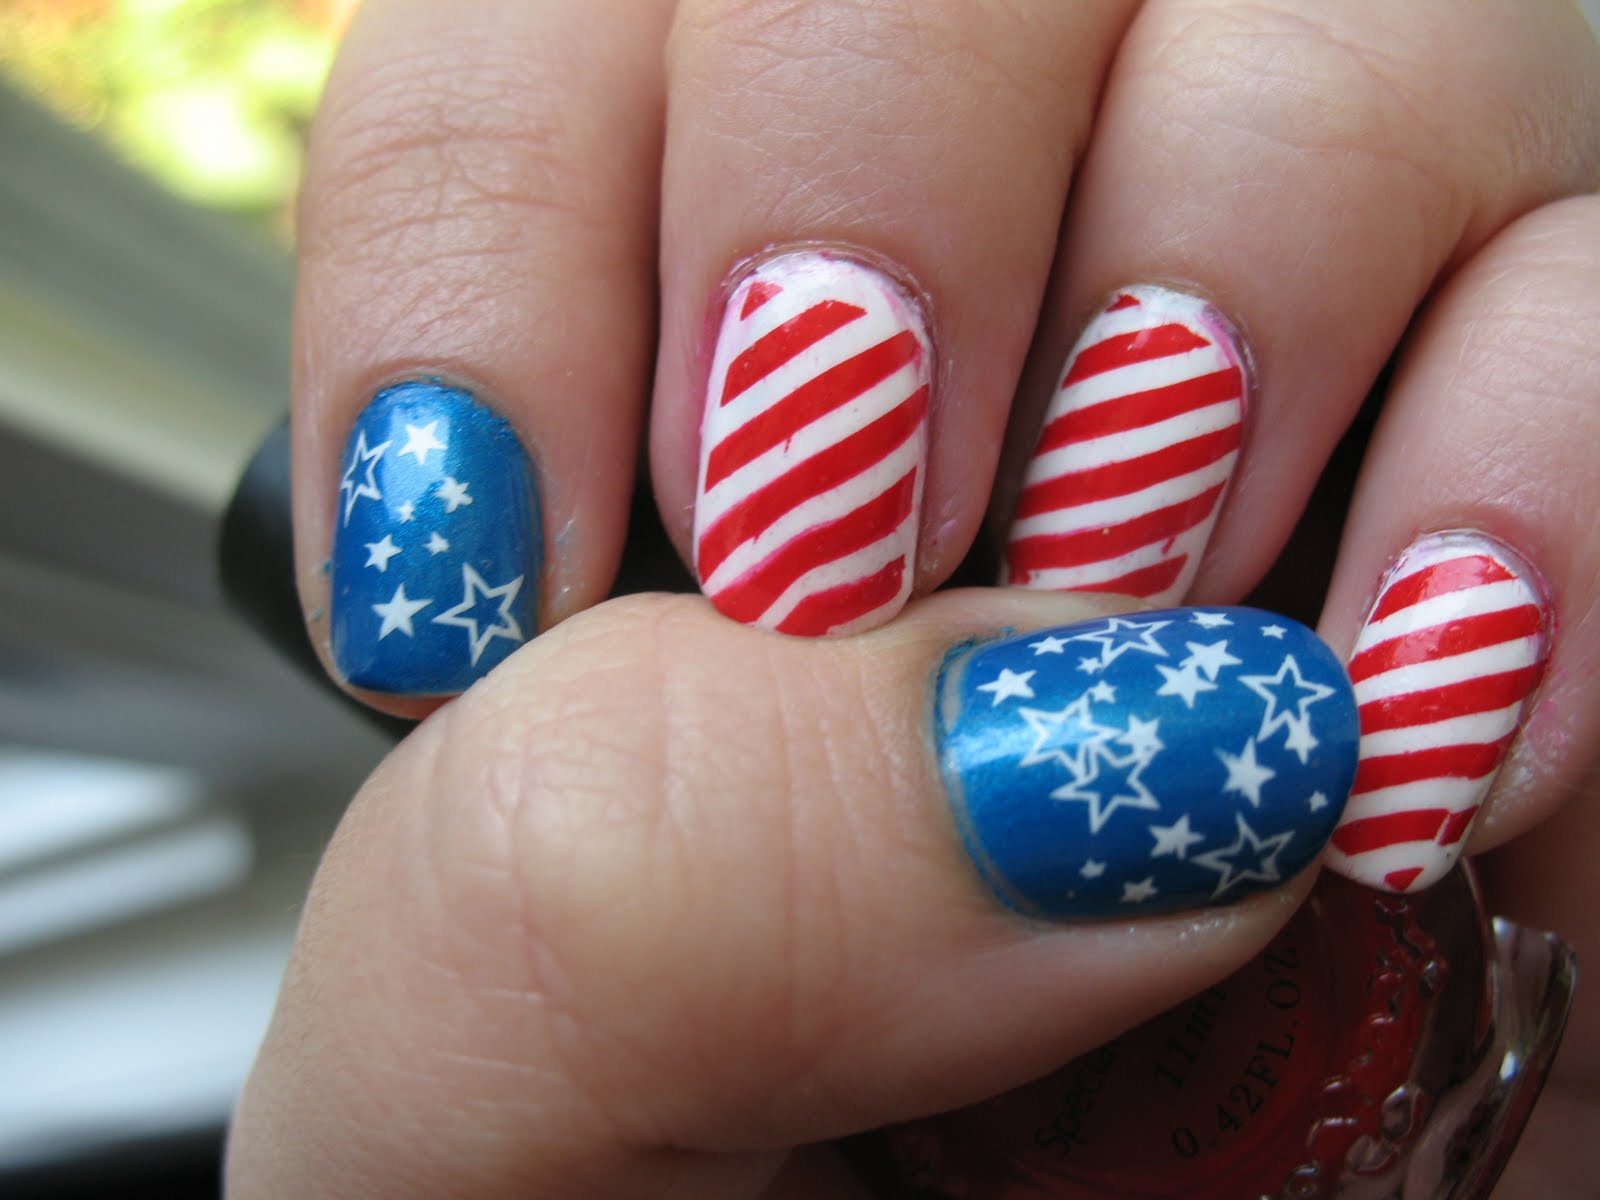 Rebel flag nail art nails gallery rebel flag nail art gallery prinsesfo Gallery